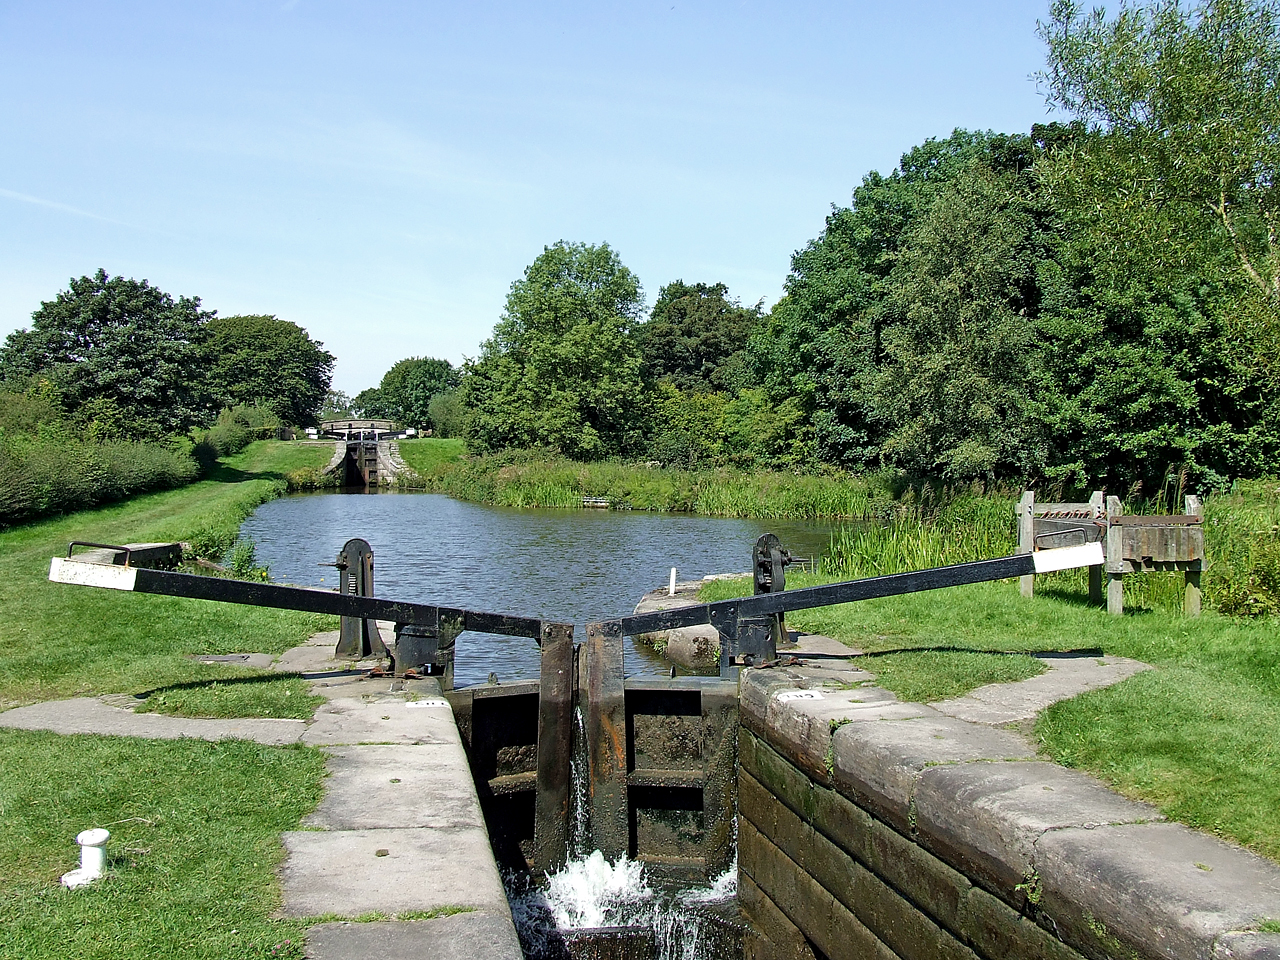 Bosley Locks 9 and 10, Macclesfield Canal, Cheshire - geograph.org.uk - 550317